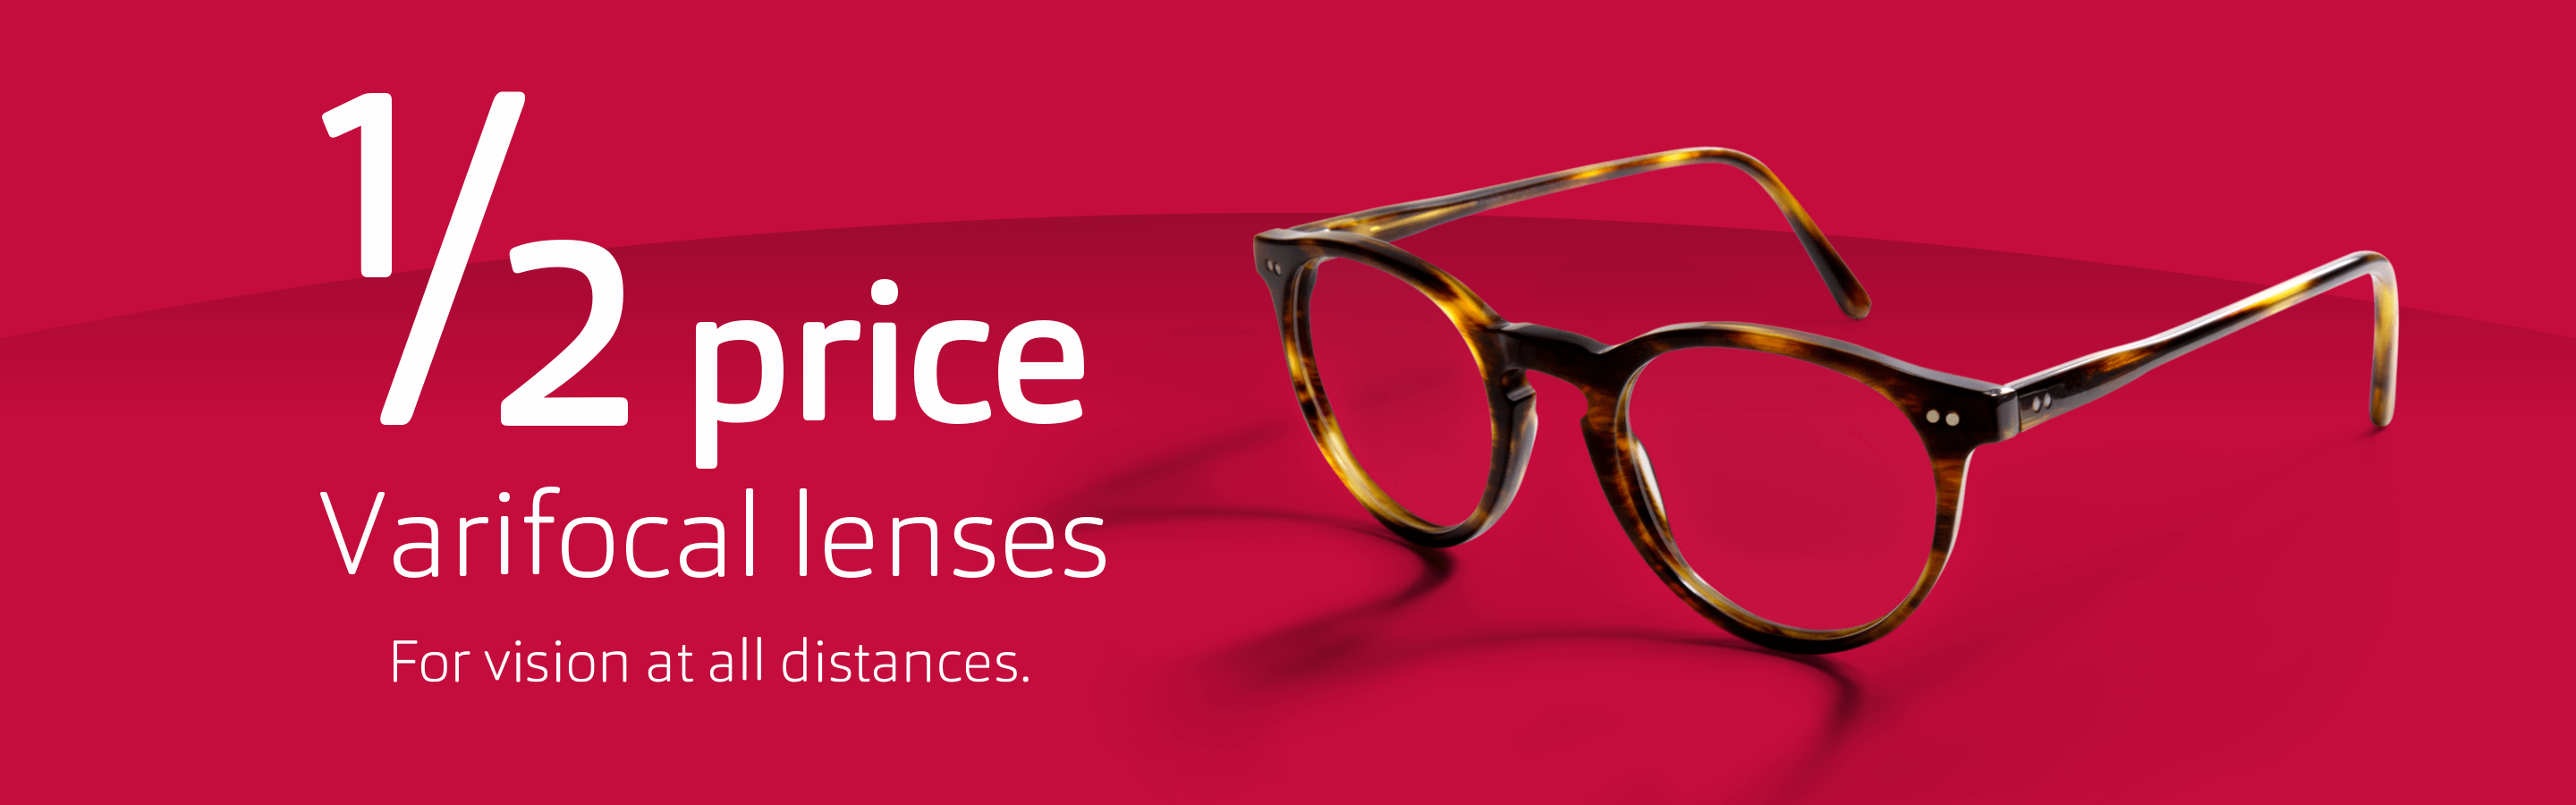 Half price on all varifocal lenses - Special offer